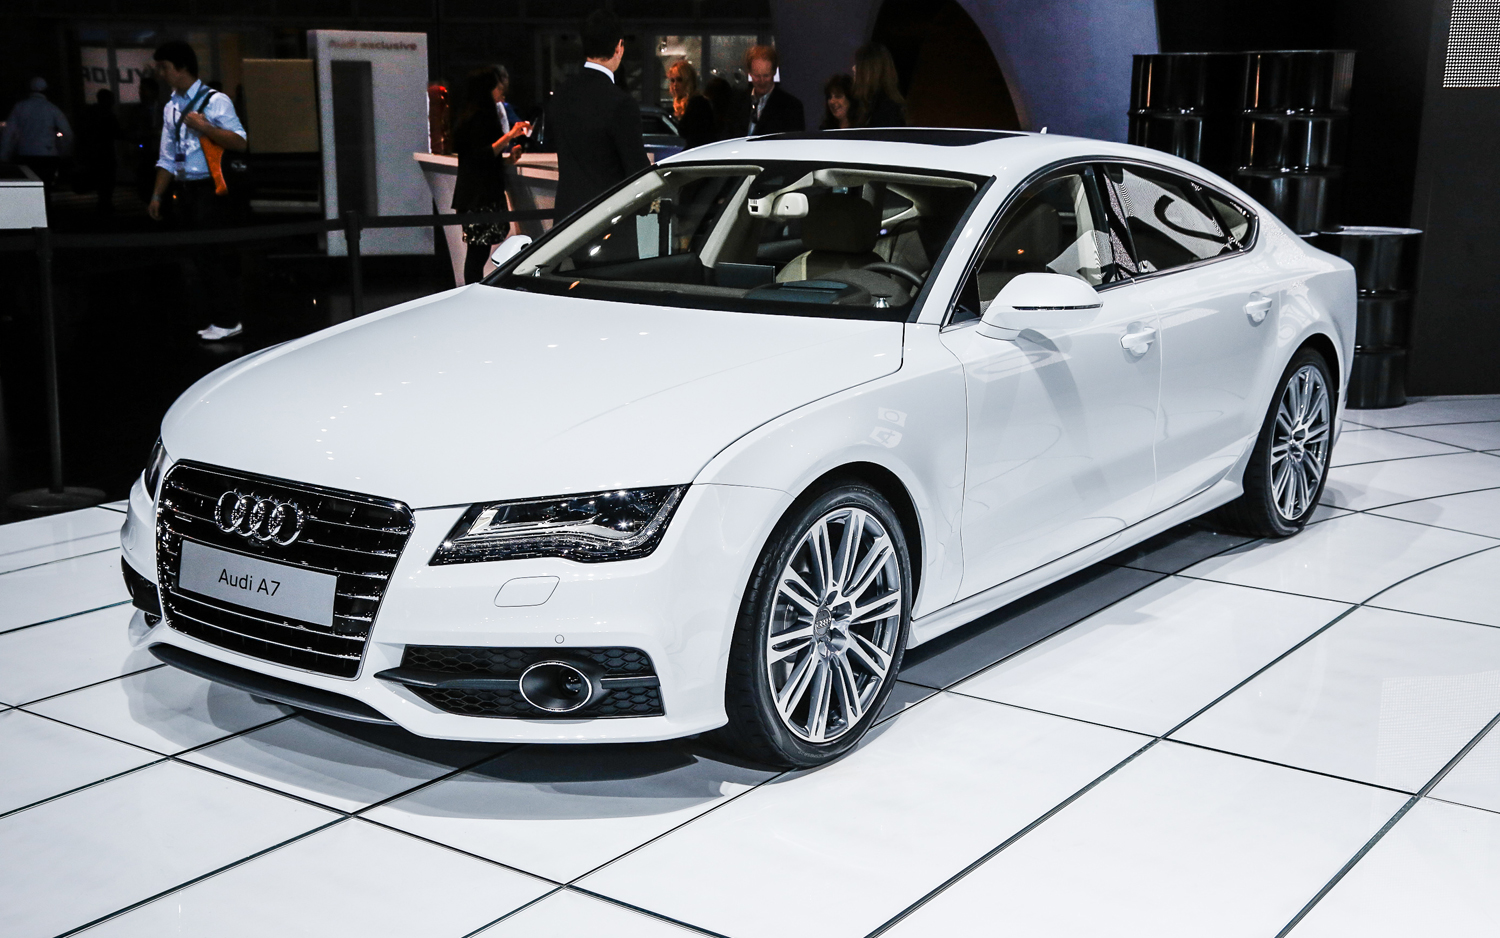 2013 audi a7 information and photos momentcar. Black Bedroom Furniture Sets. Home Design Ideas